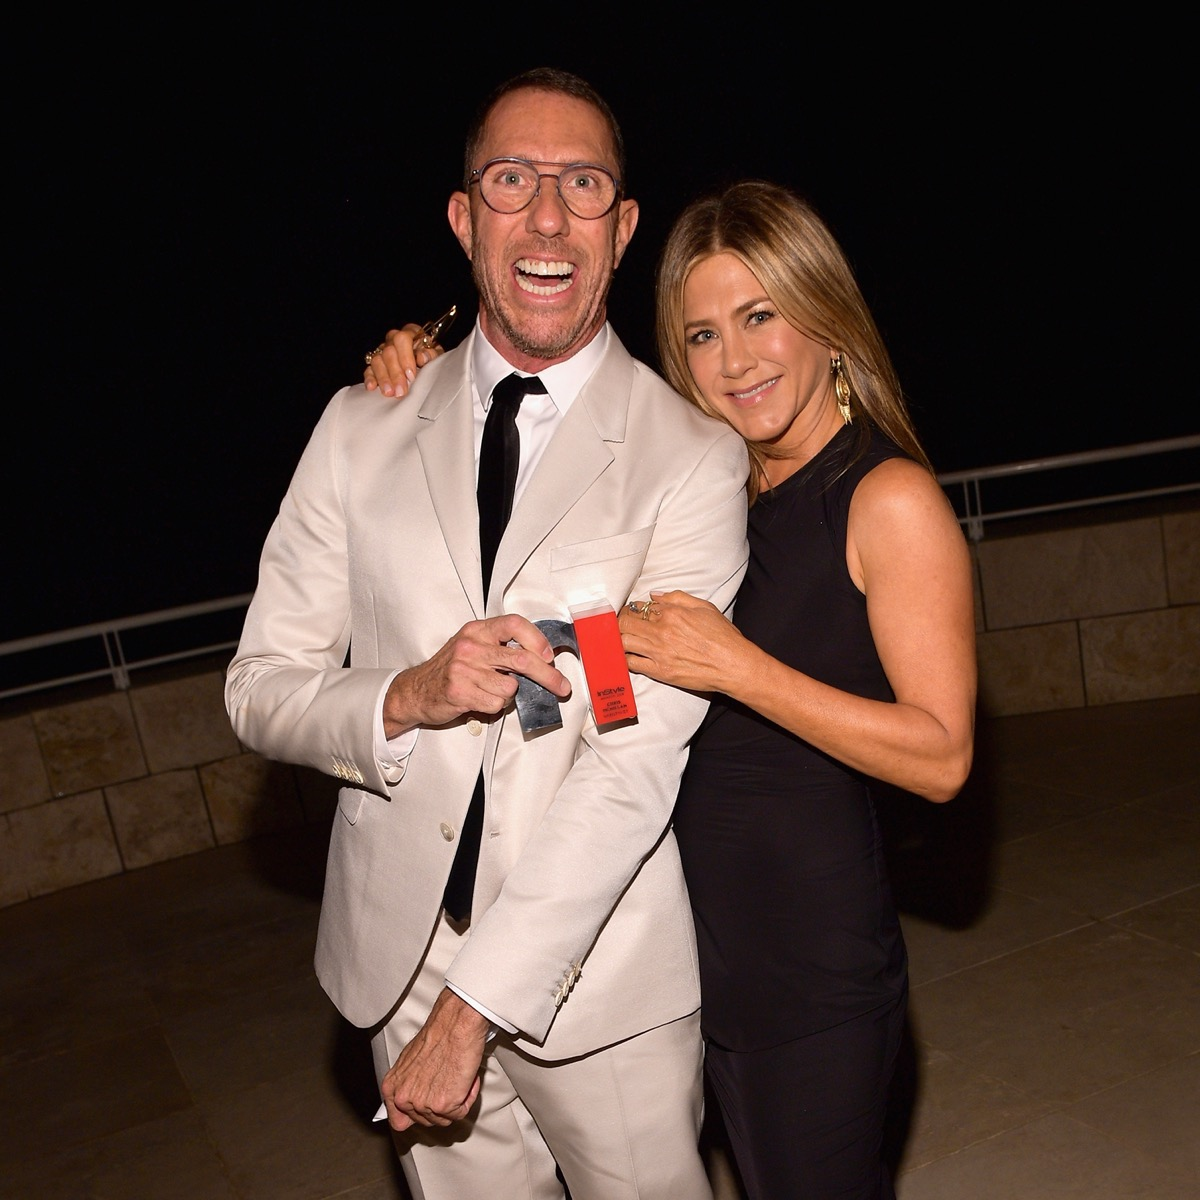 Chris McMillan and Jennifer Aniston at the InStyle Awards in 2018